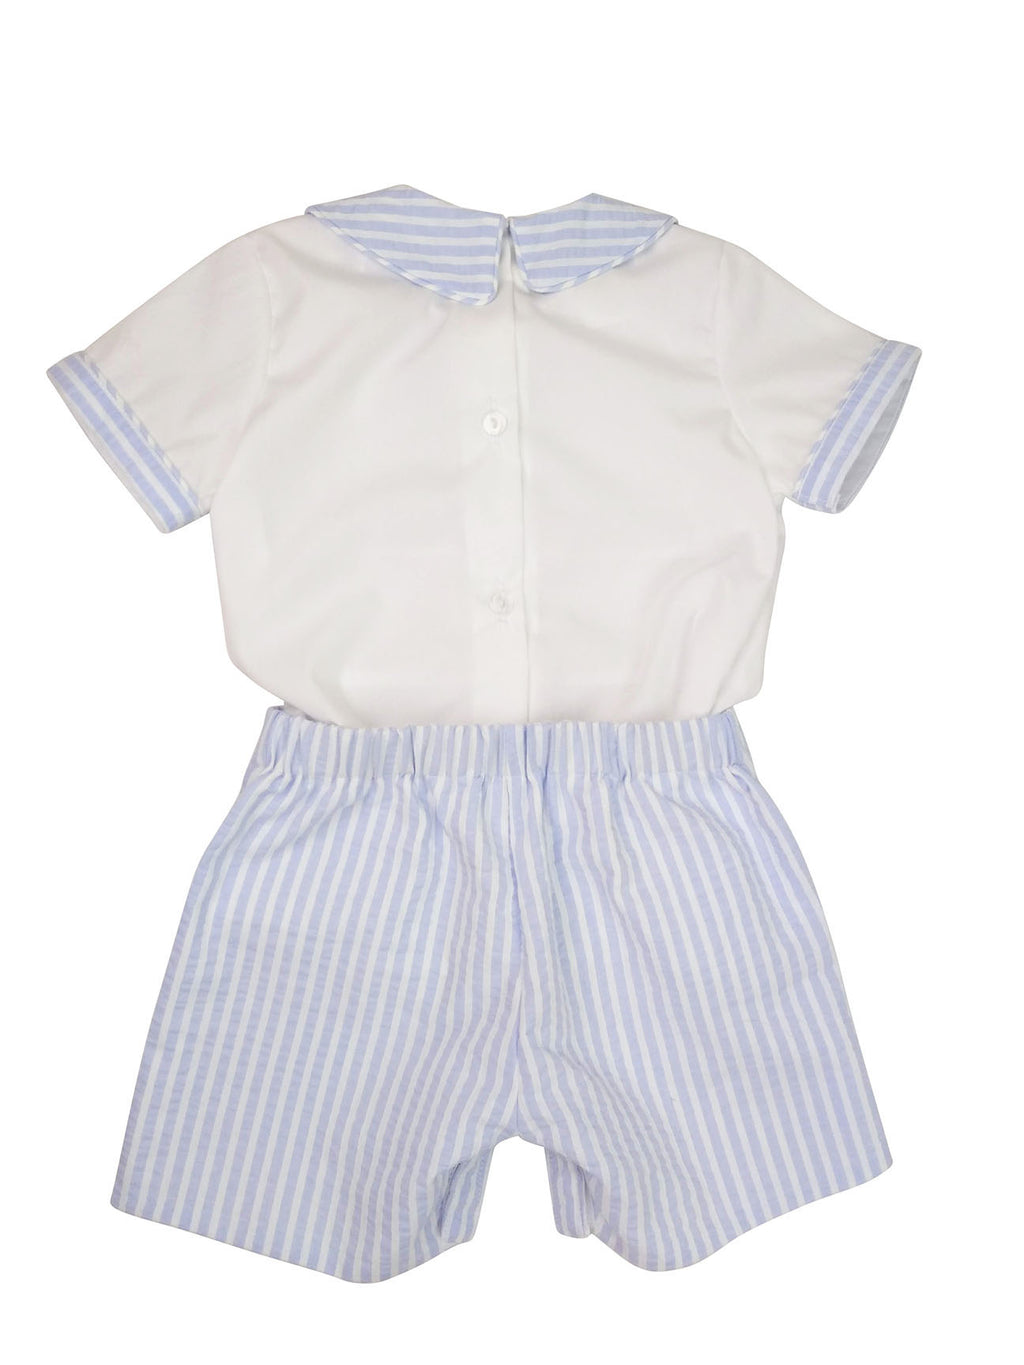 Lucas Boy's Short set - Little Threads Inc. Children's Clothing